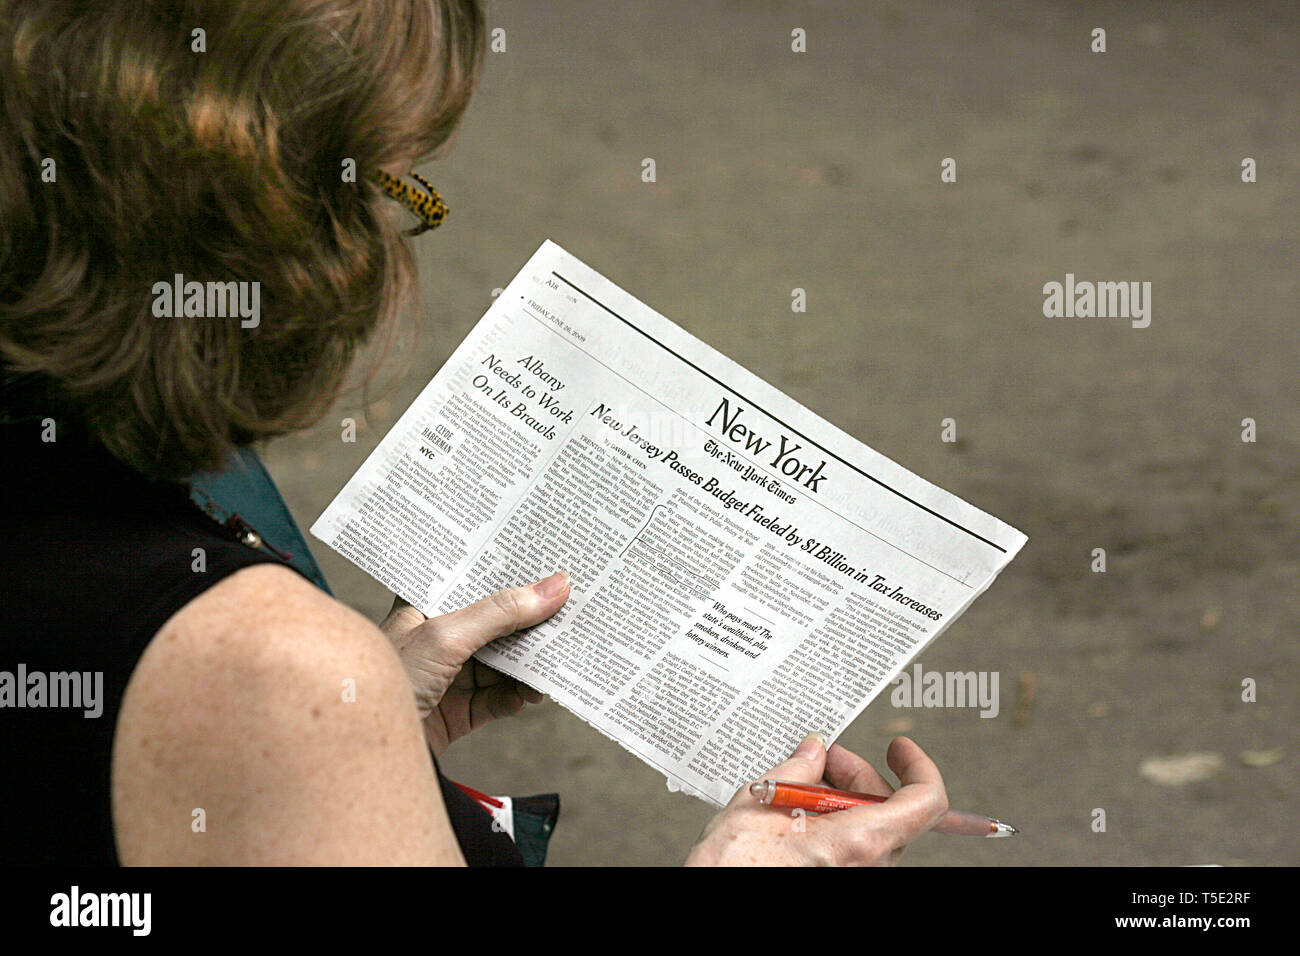 Reading The Newspaper New York City Stock Photos & Reading The